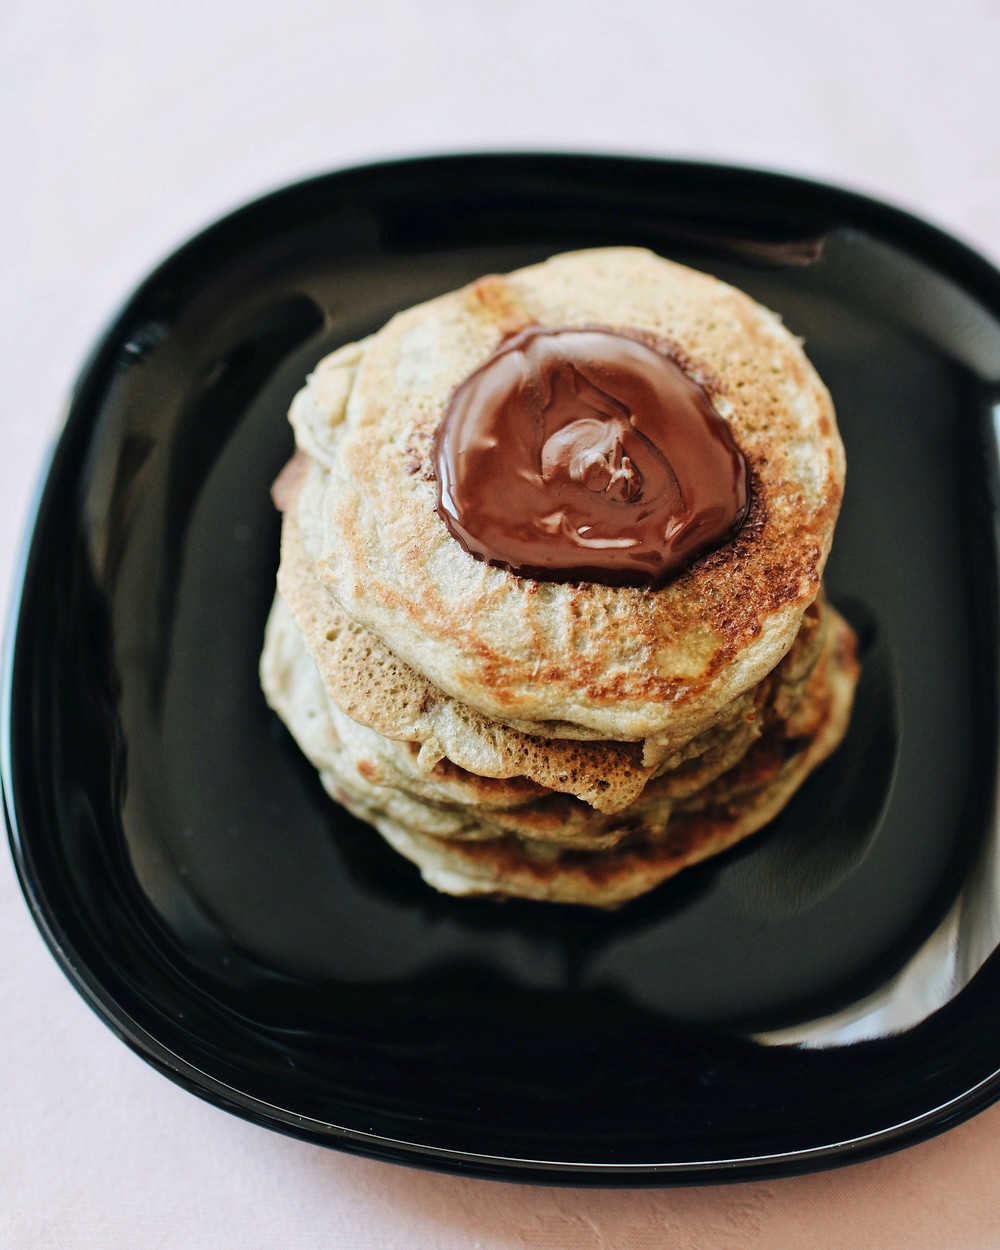 Birds eye view of gluten free and dairy free coconut matcha pancakes with dark chocolate melted on top.